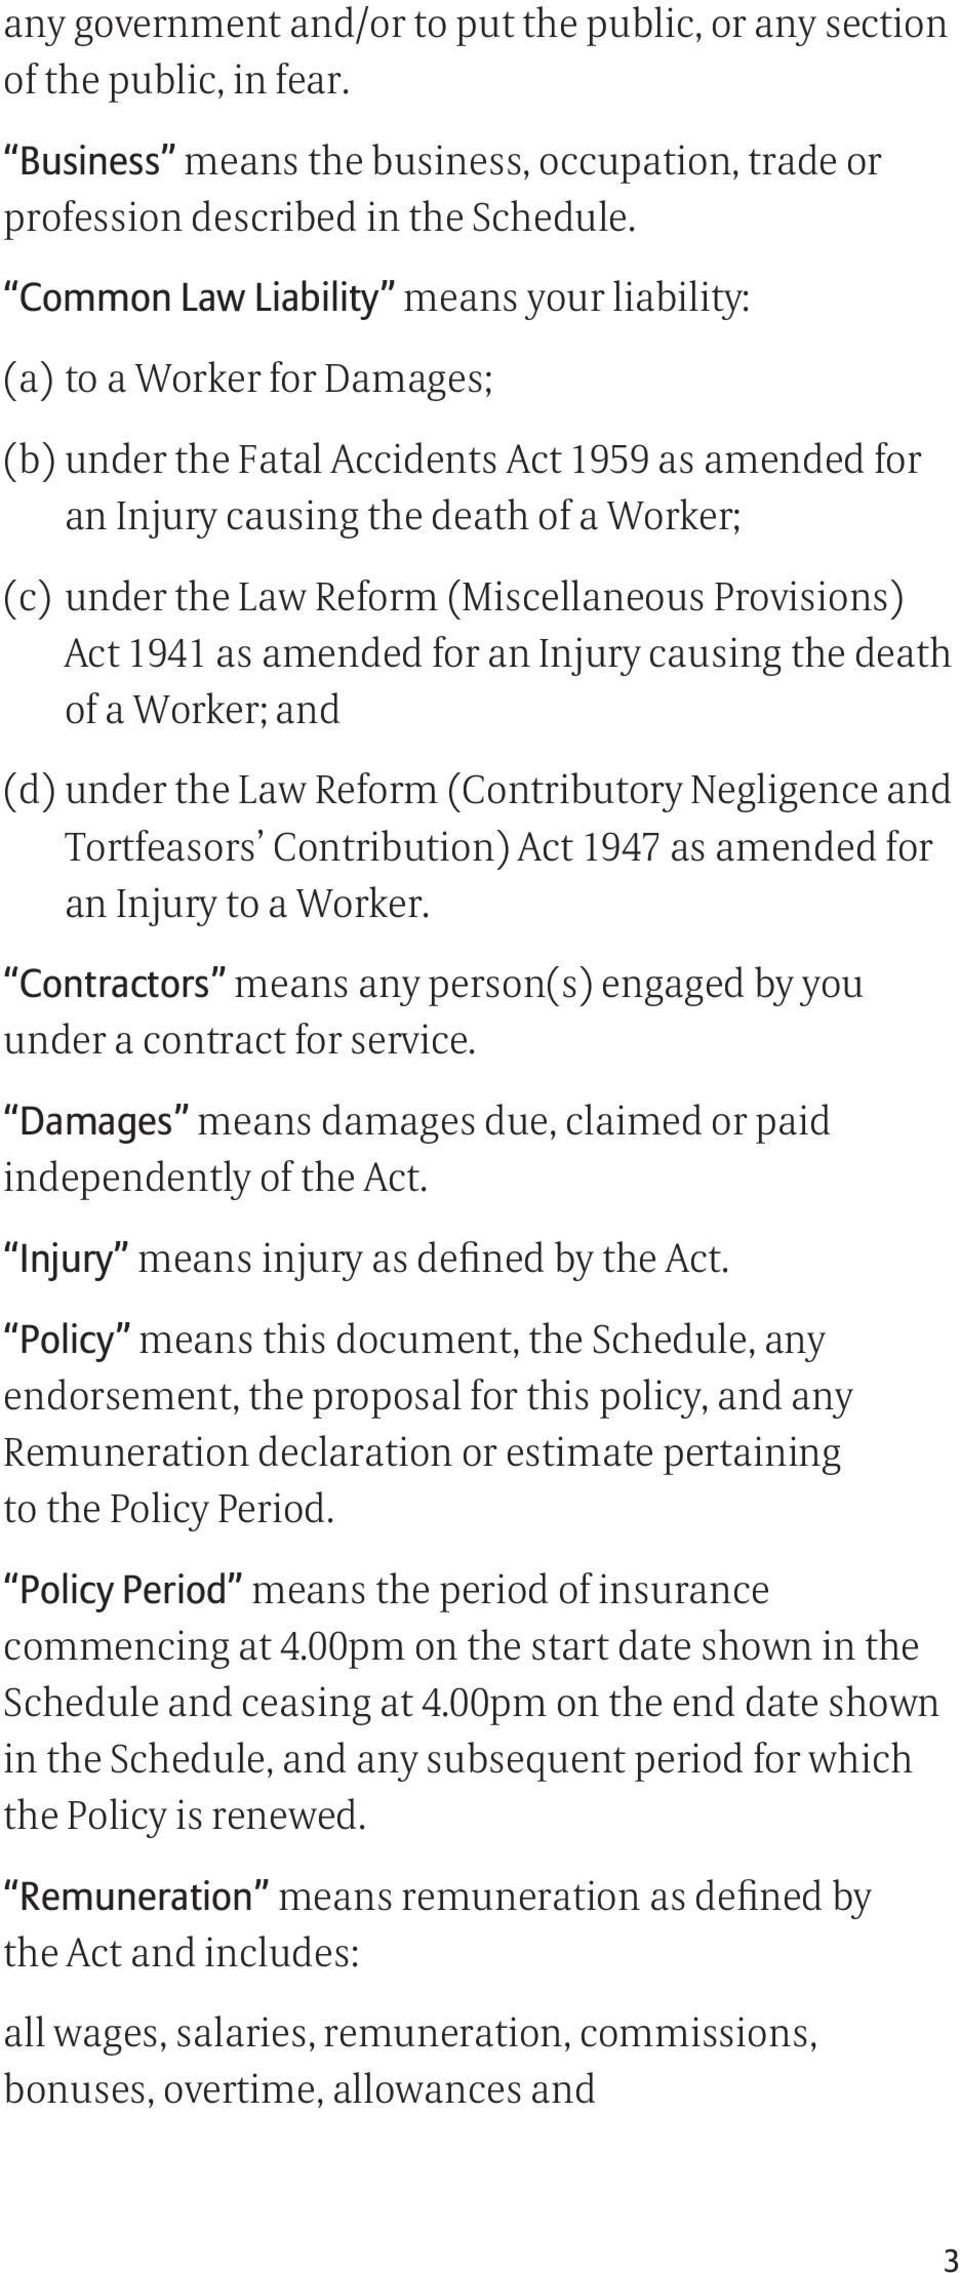 (Miscellaneous Provisions) Act 1941 as amended for an Injury causing the death of a Worker; and (d) under the Law Reform (Contributory Negligence and Tortfeasors Contribution) Act 1947 as amended for